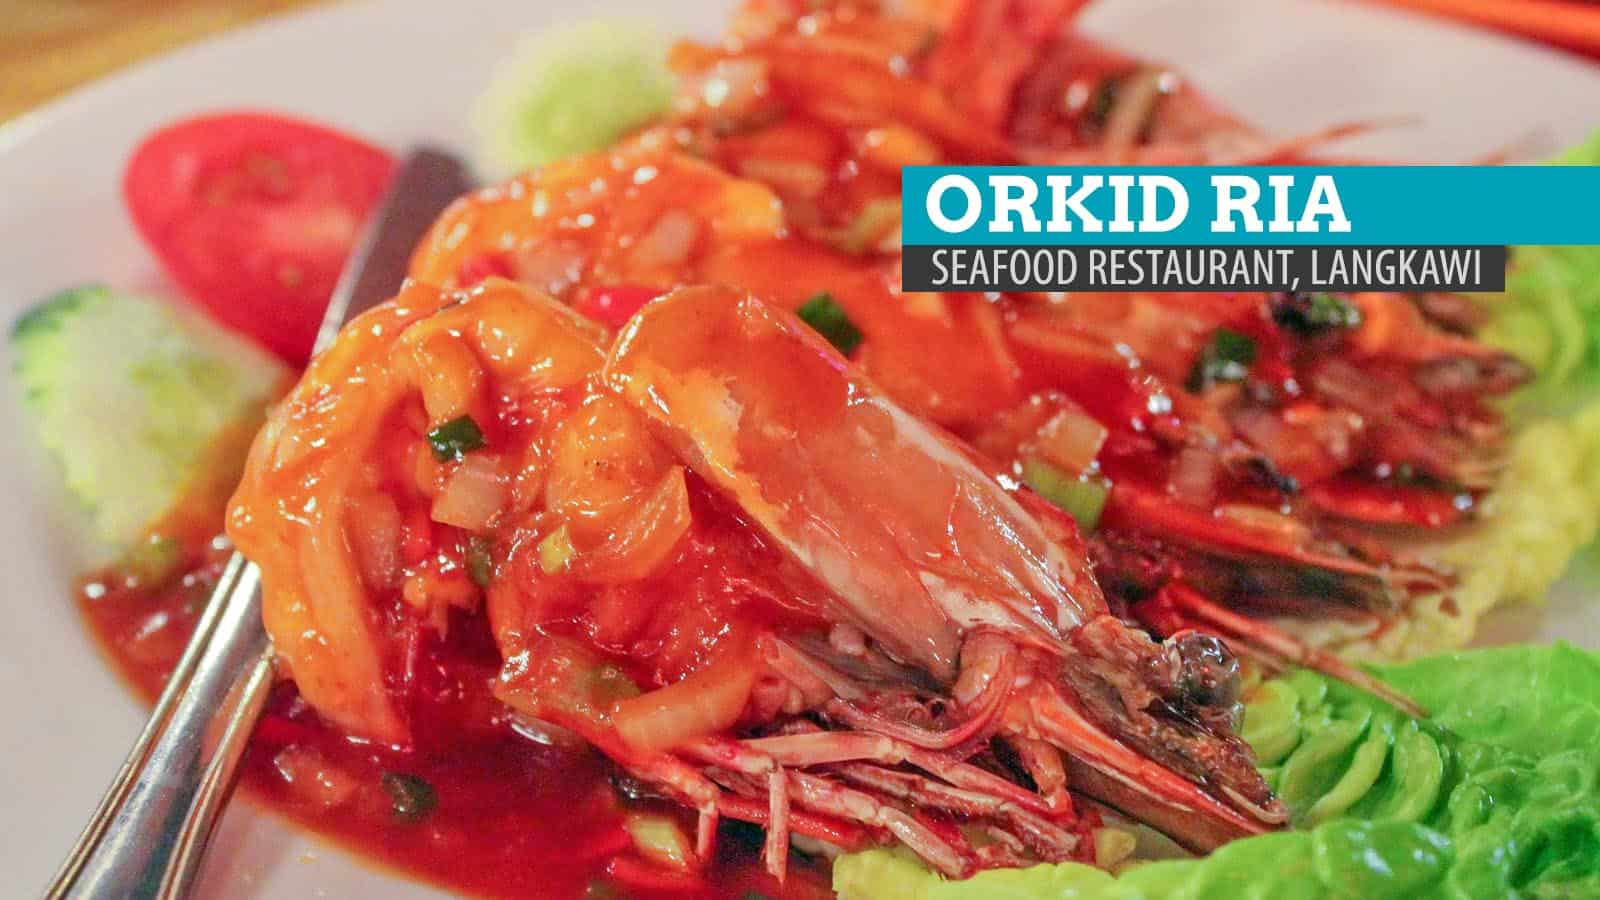 Orkid Ria Seafood Restaurant: Where to Eat in Langkawi, Malaysia